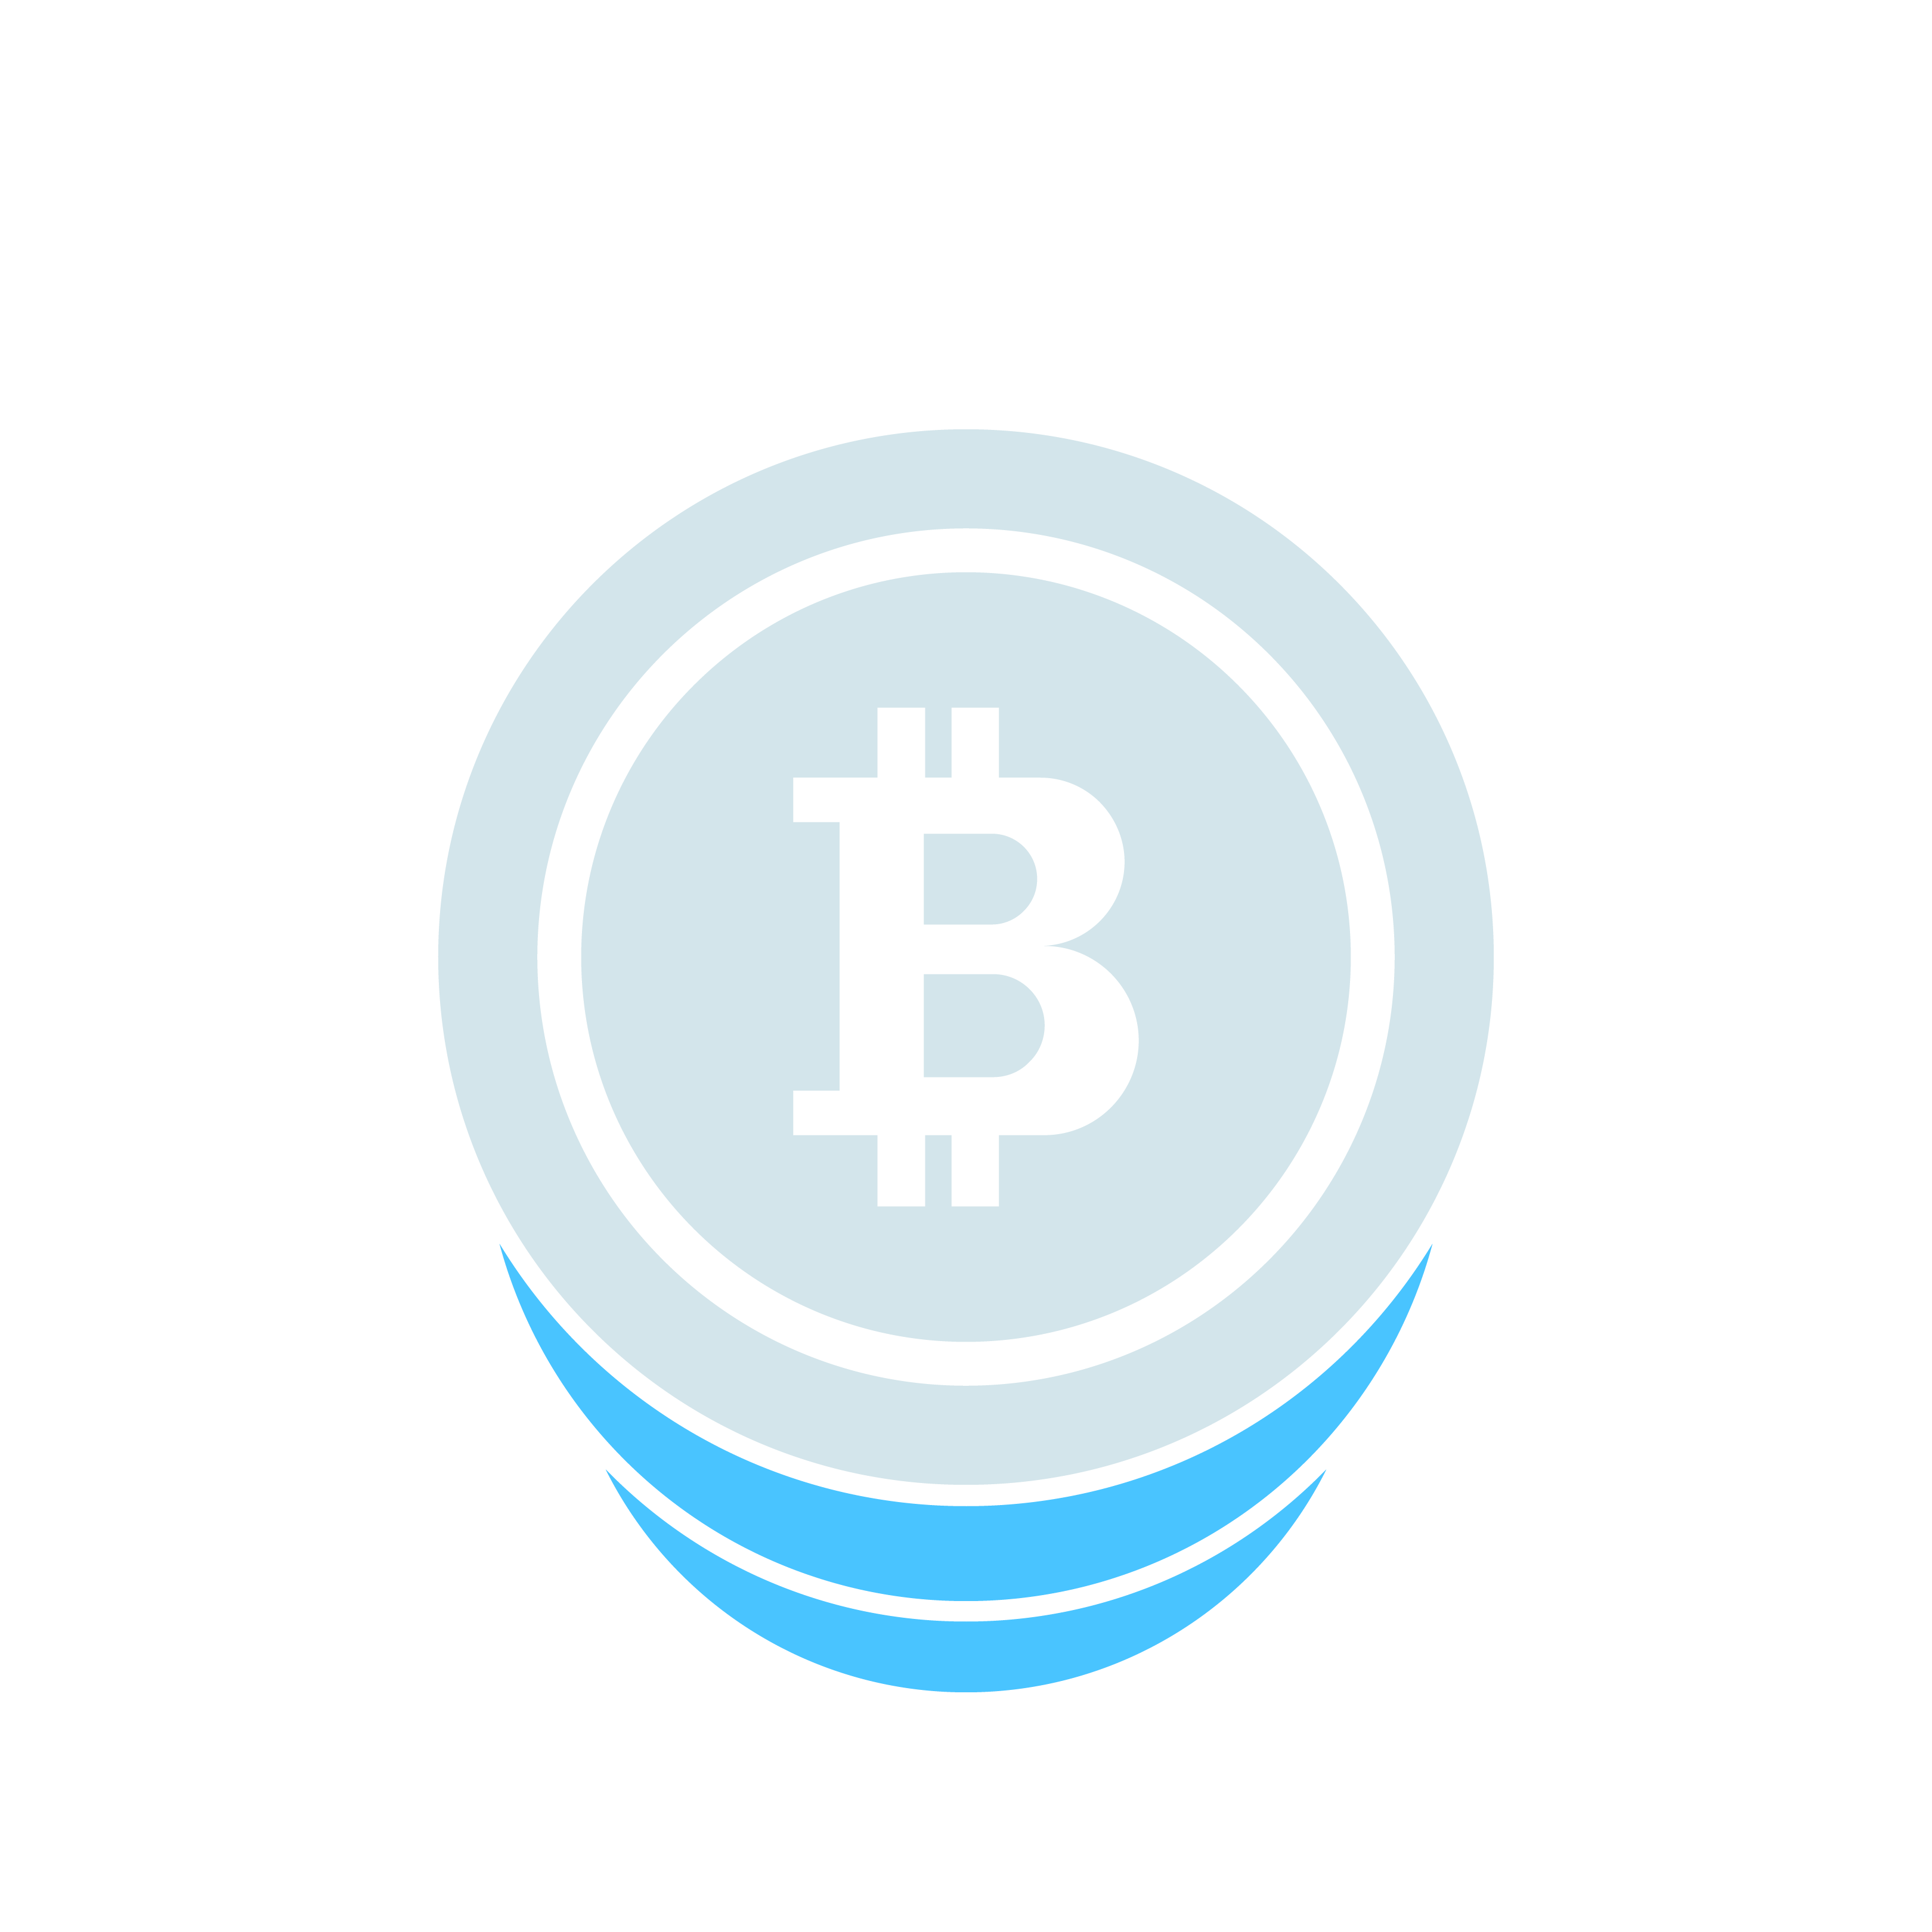 Graphical representation of a stack of bitcoins